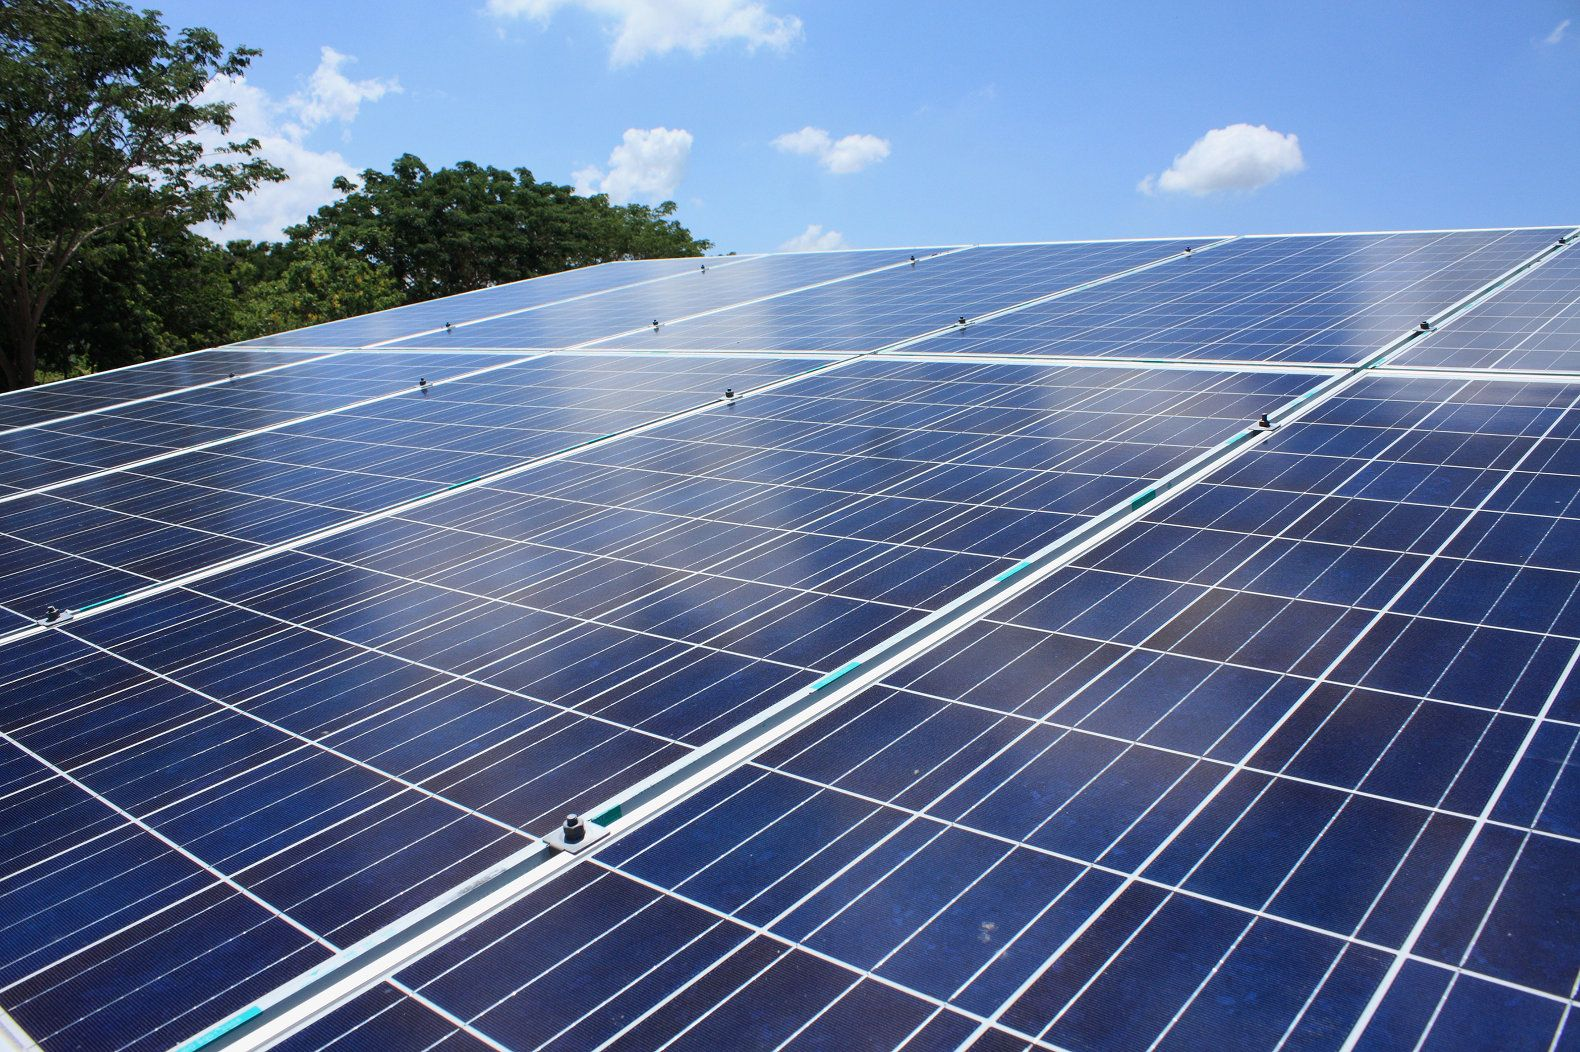 New hybrid solar cells generate 5 times more energy by